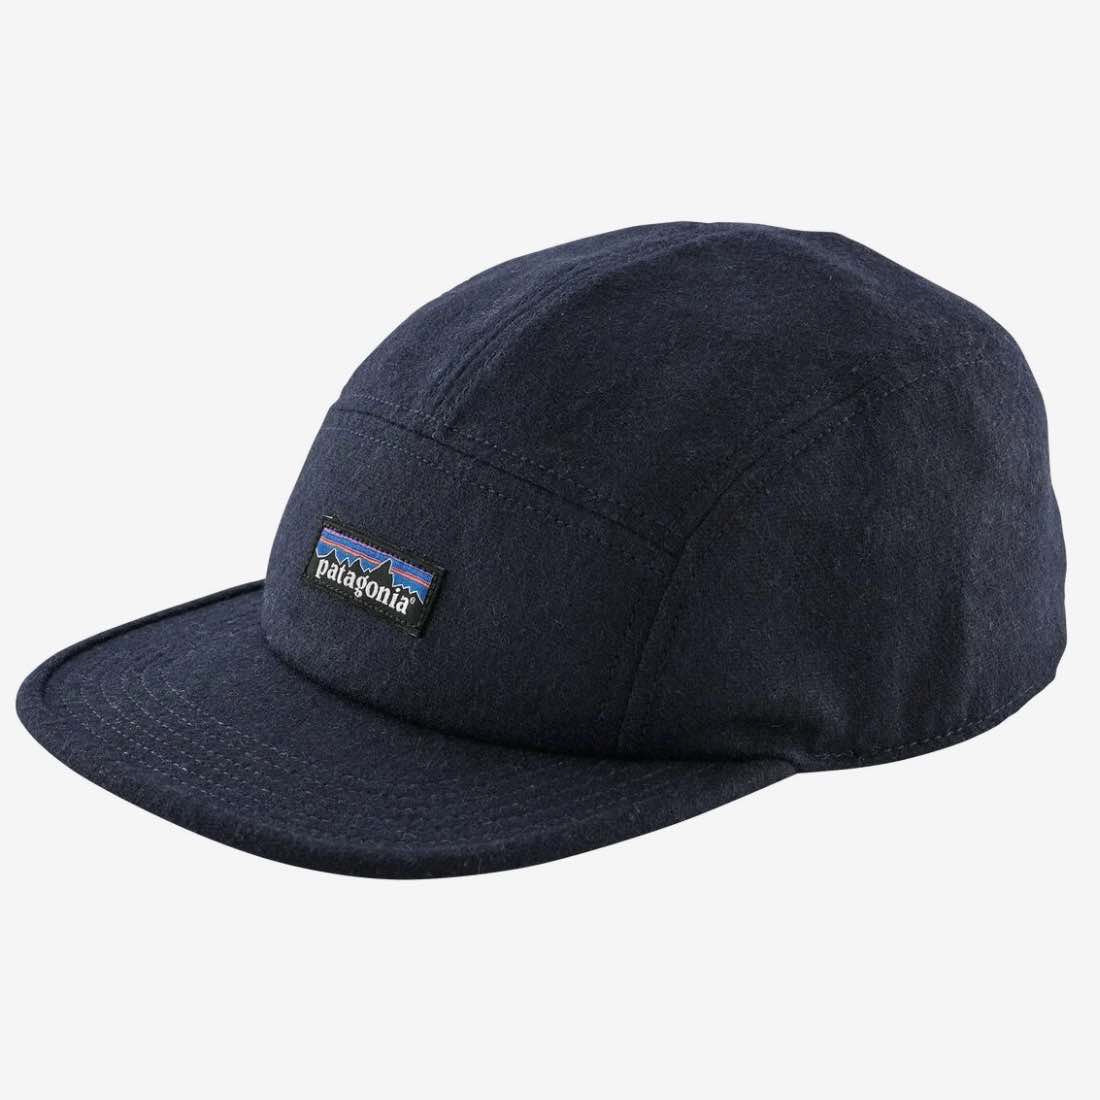 PATAGONIA RECYCLED WOOL CAP - NAVY